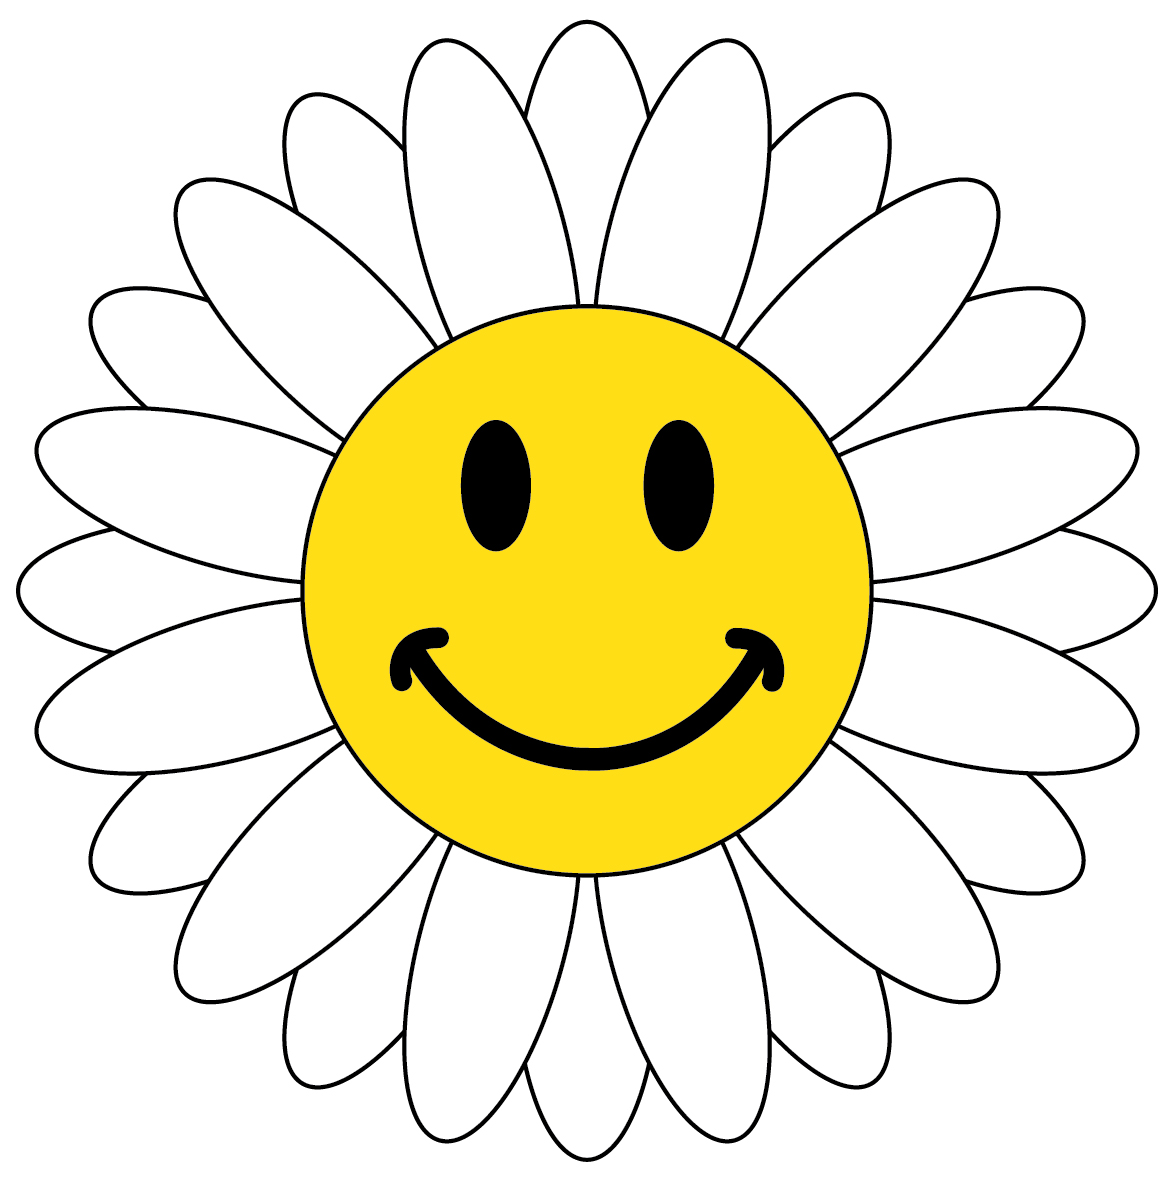 Smiley face thumbs up happy face thank you clipart